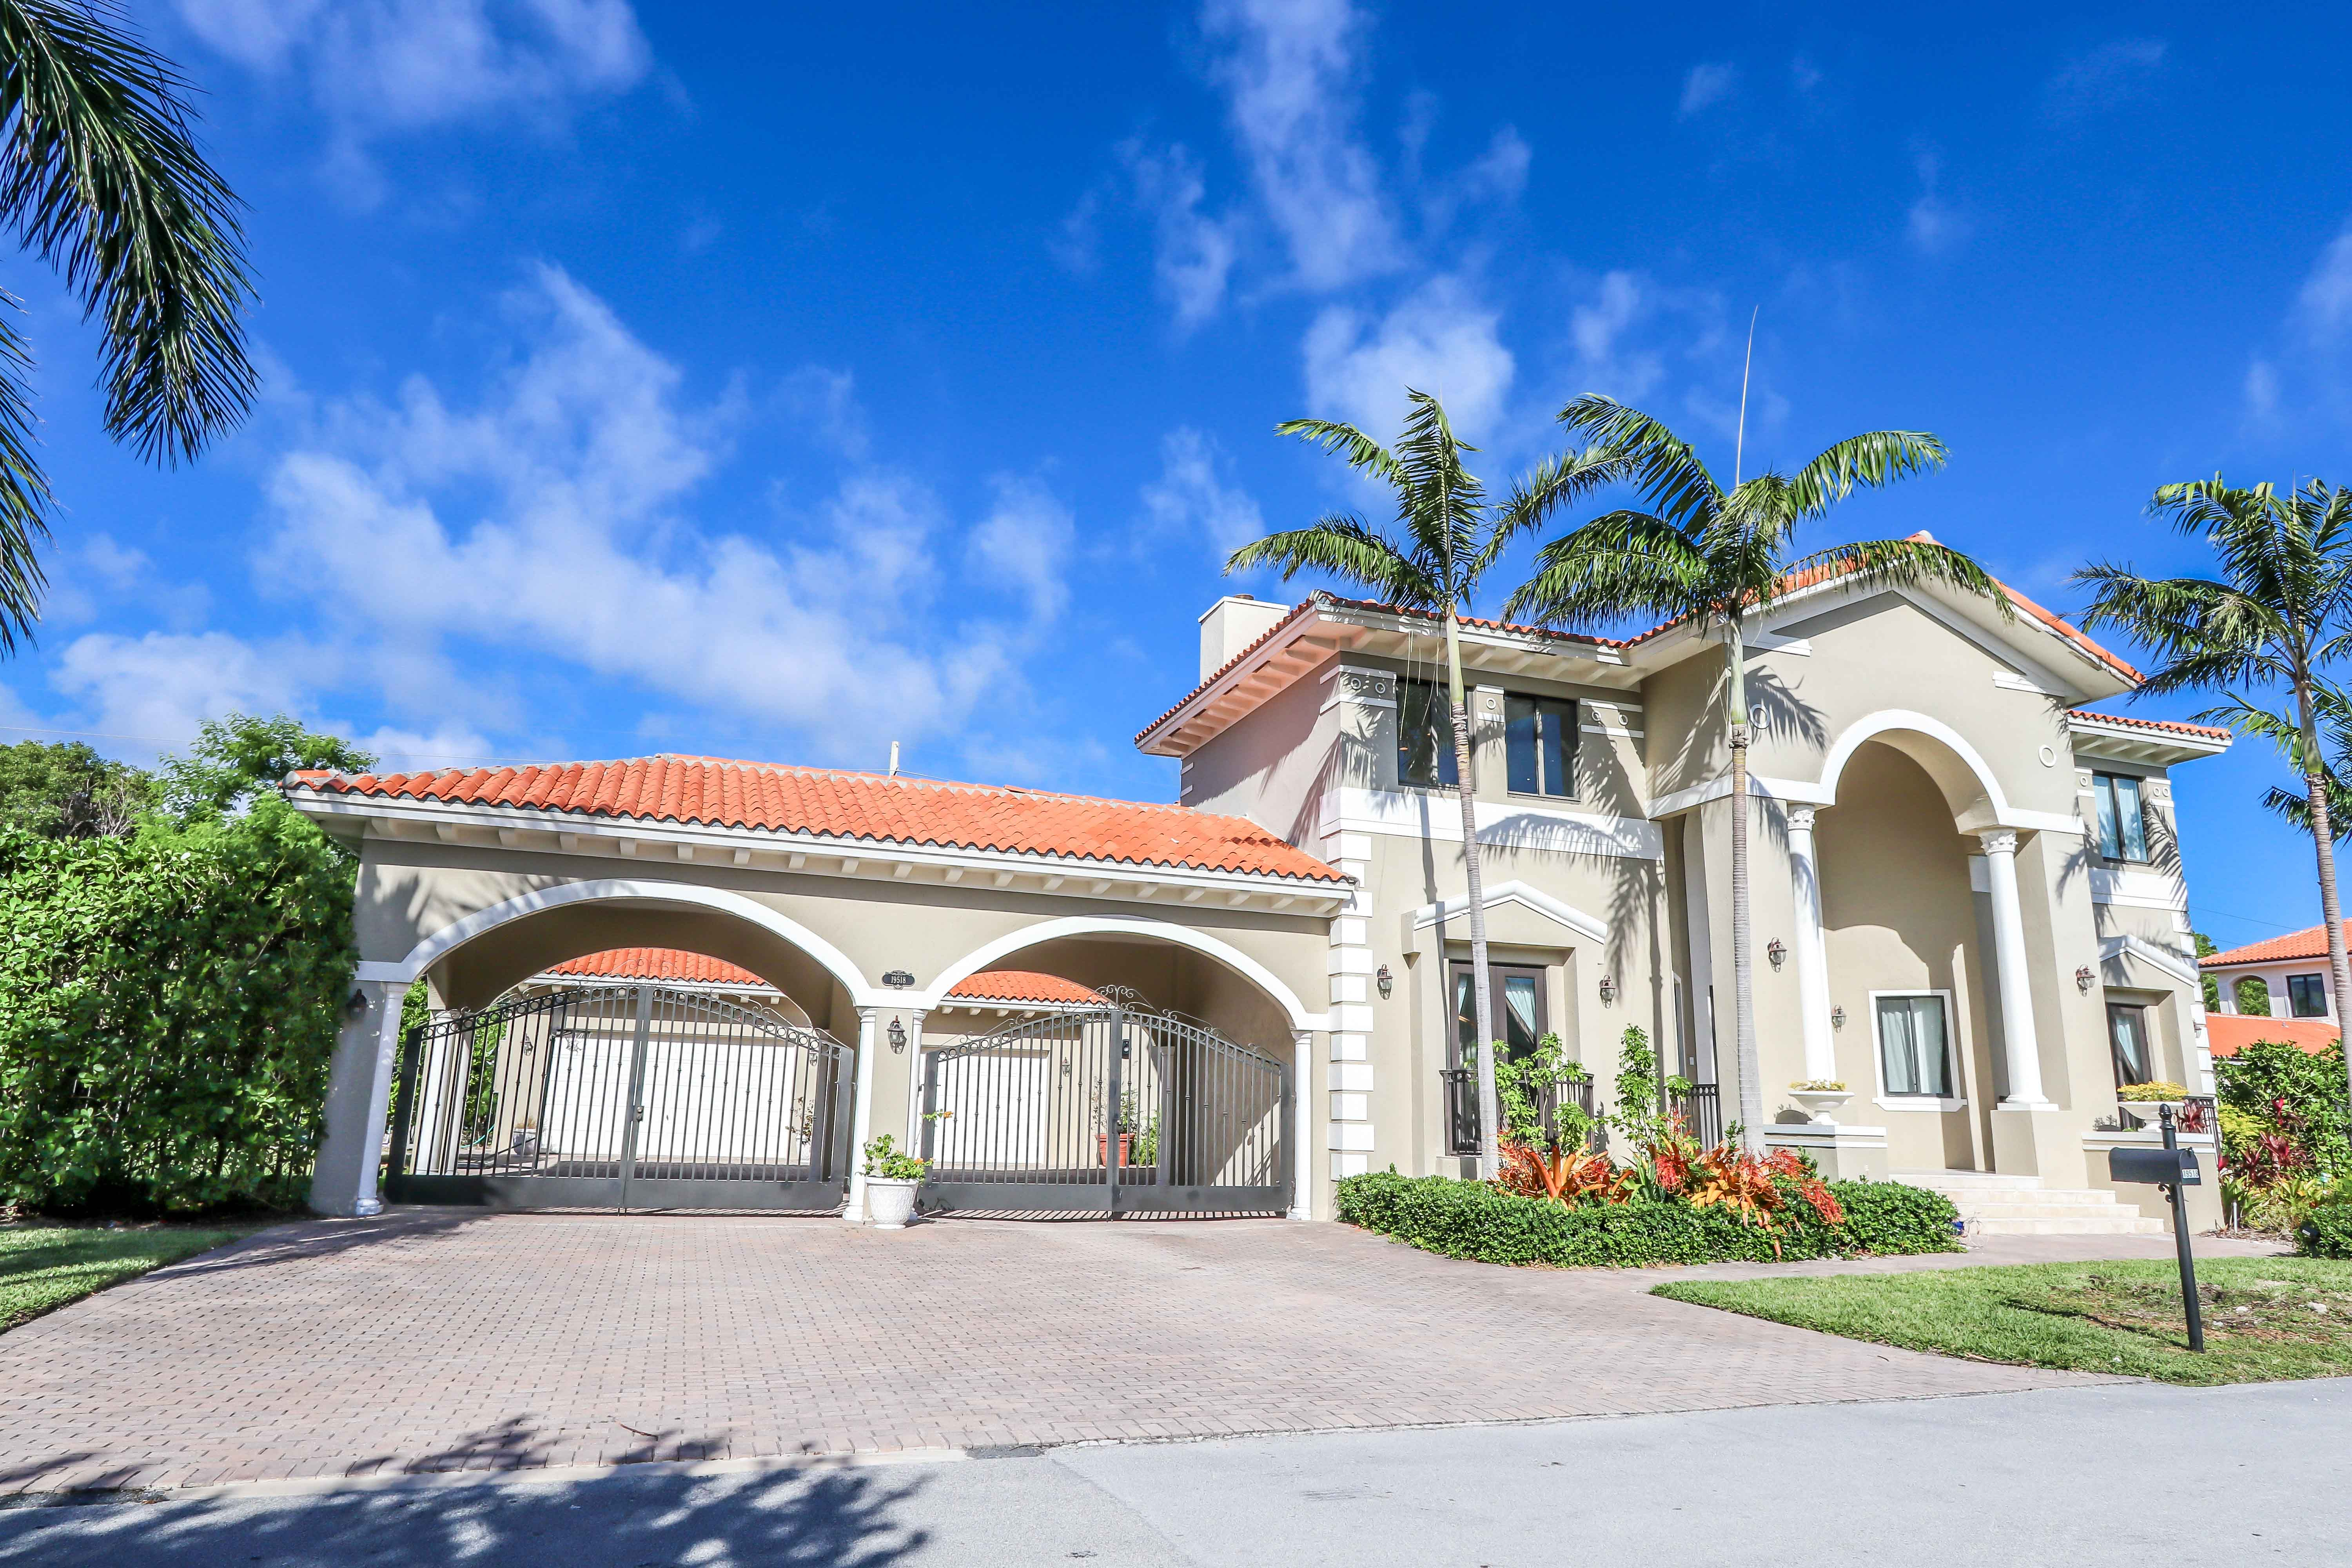 Cutler Cay Mansions for Sale, Gated Cutler Cay Homes, Luxury Homes